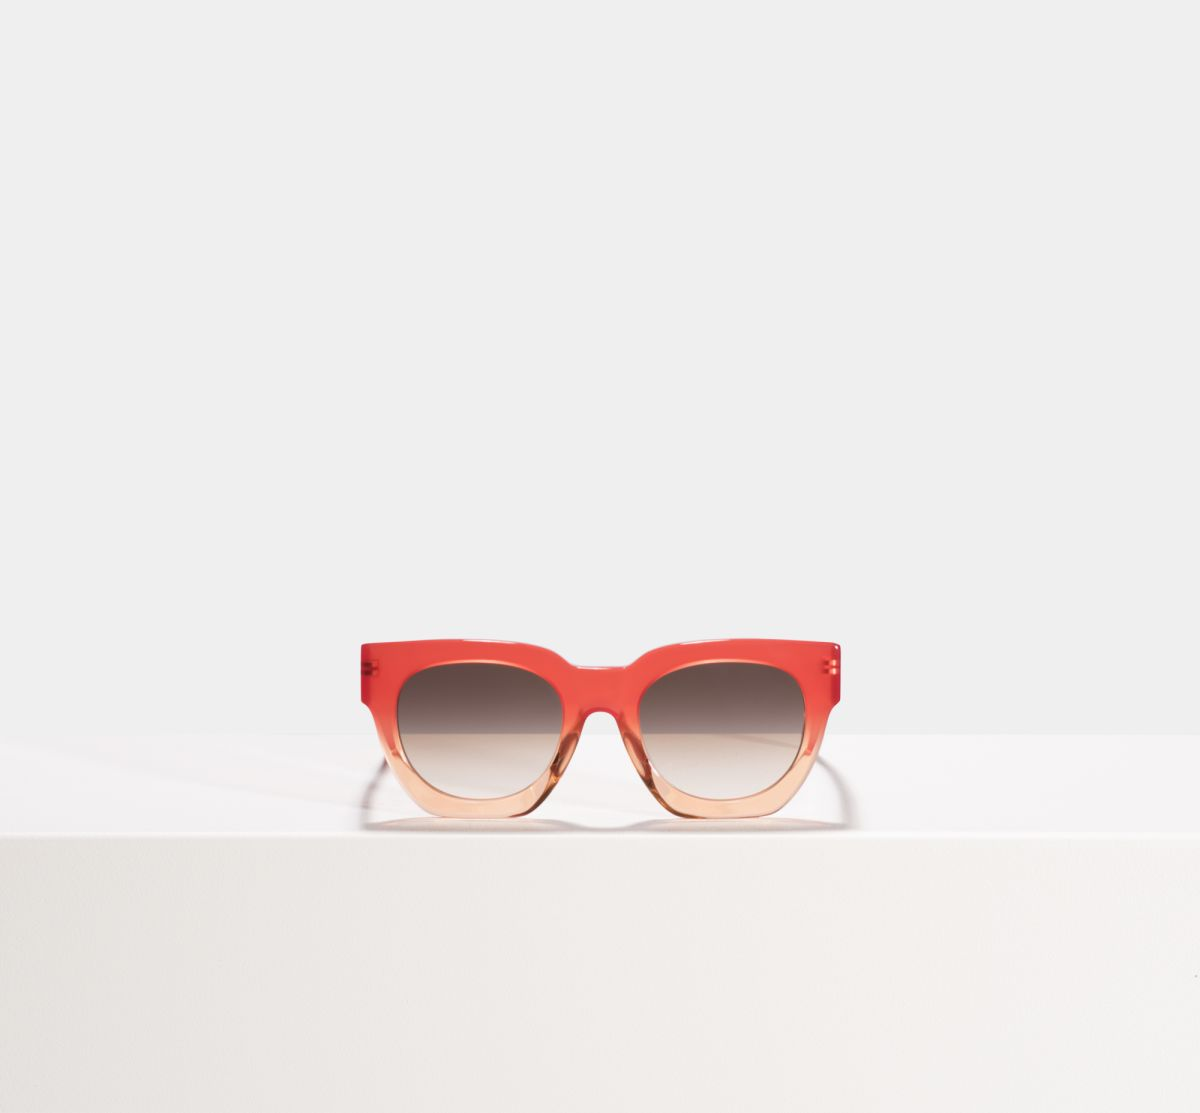 Jo rund Acetat glasses in Tangerine by Ace & Tate